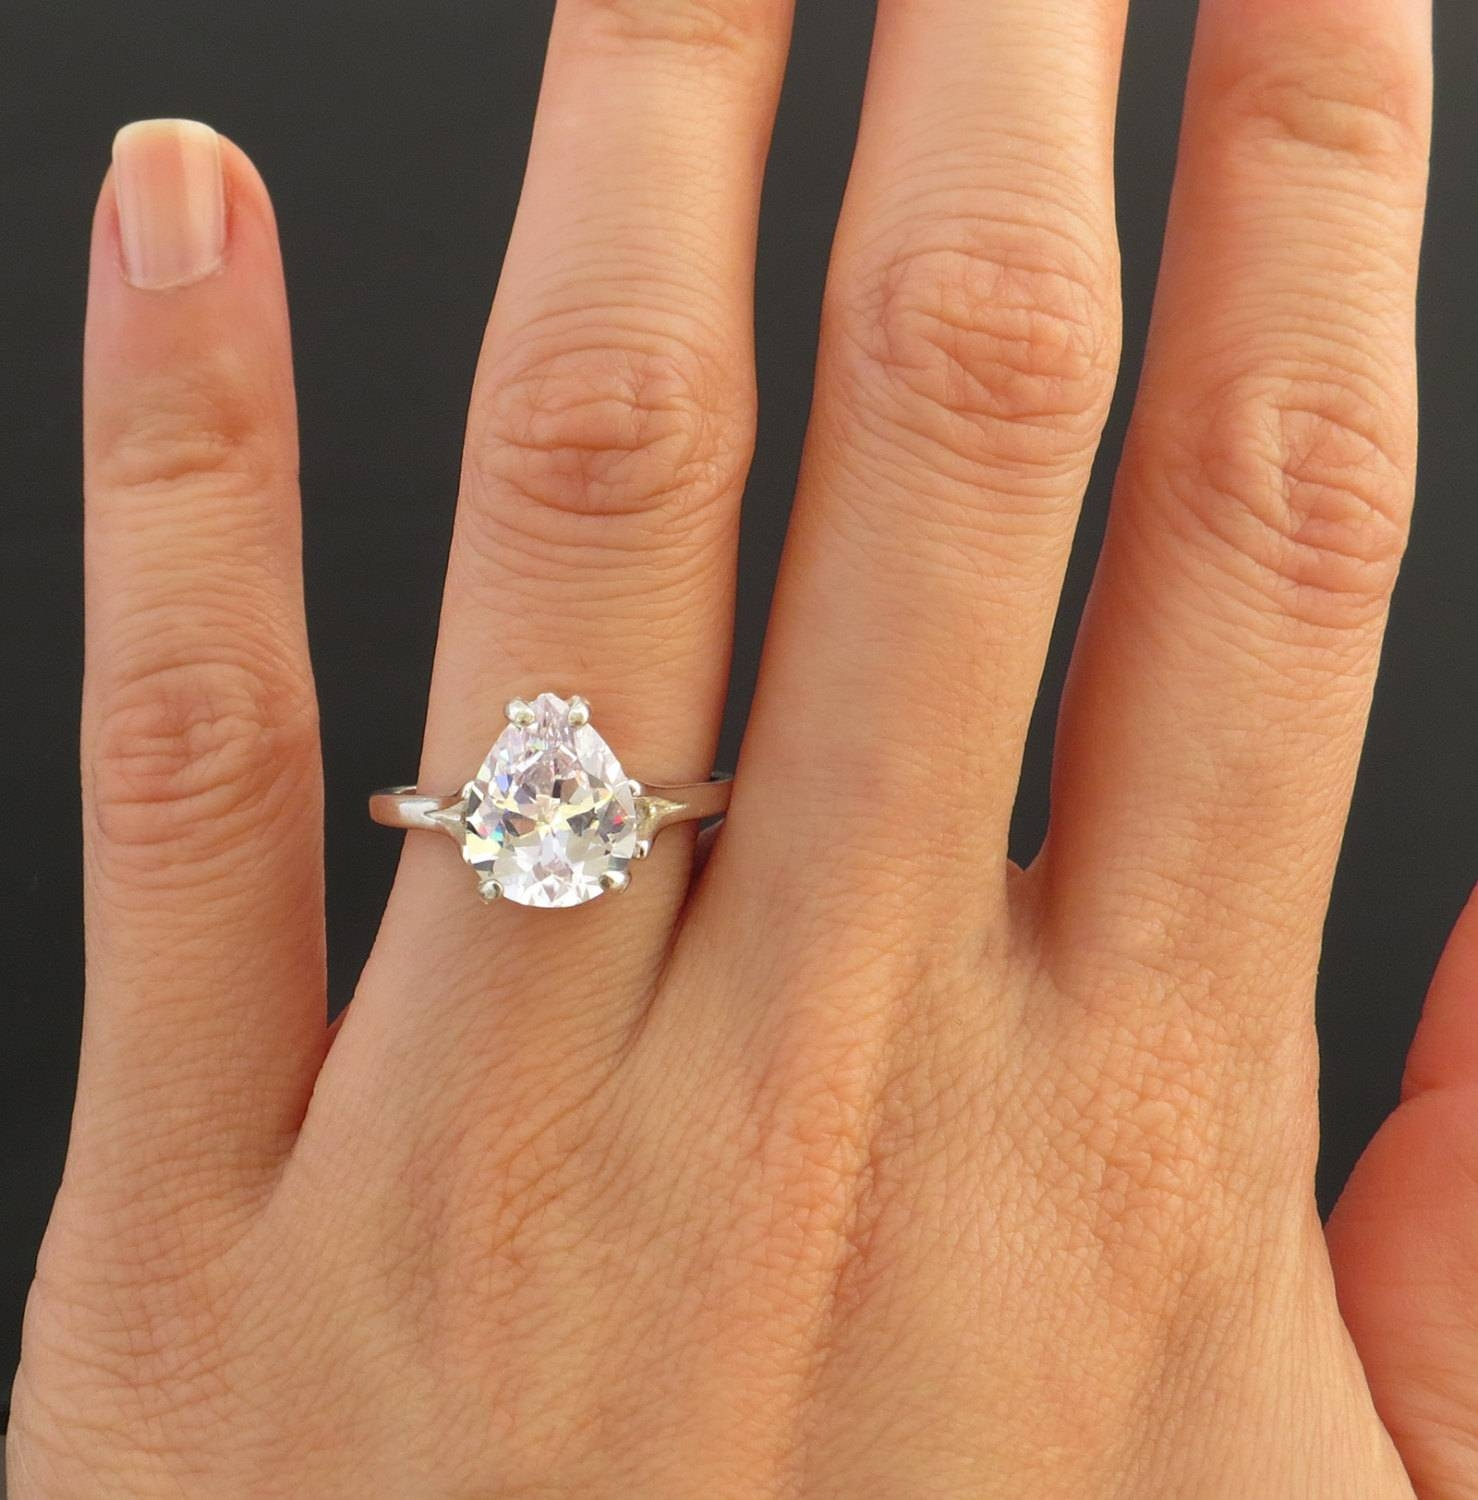 5 Carat Solitaire Diamond Ring Regarding 5 Carat Diamond Wedding Rings (Gallery 4 of 15)